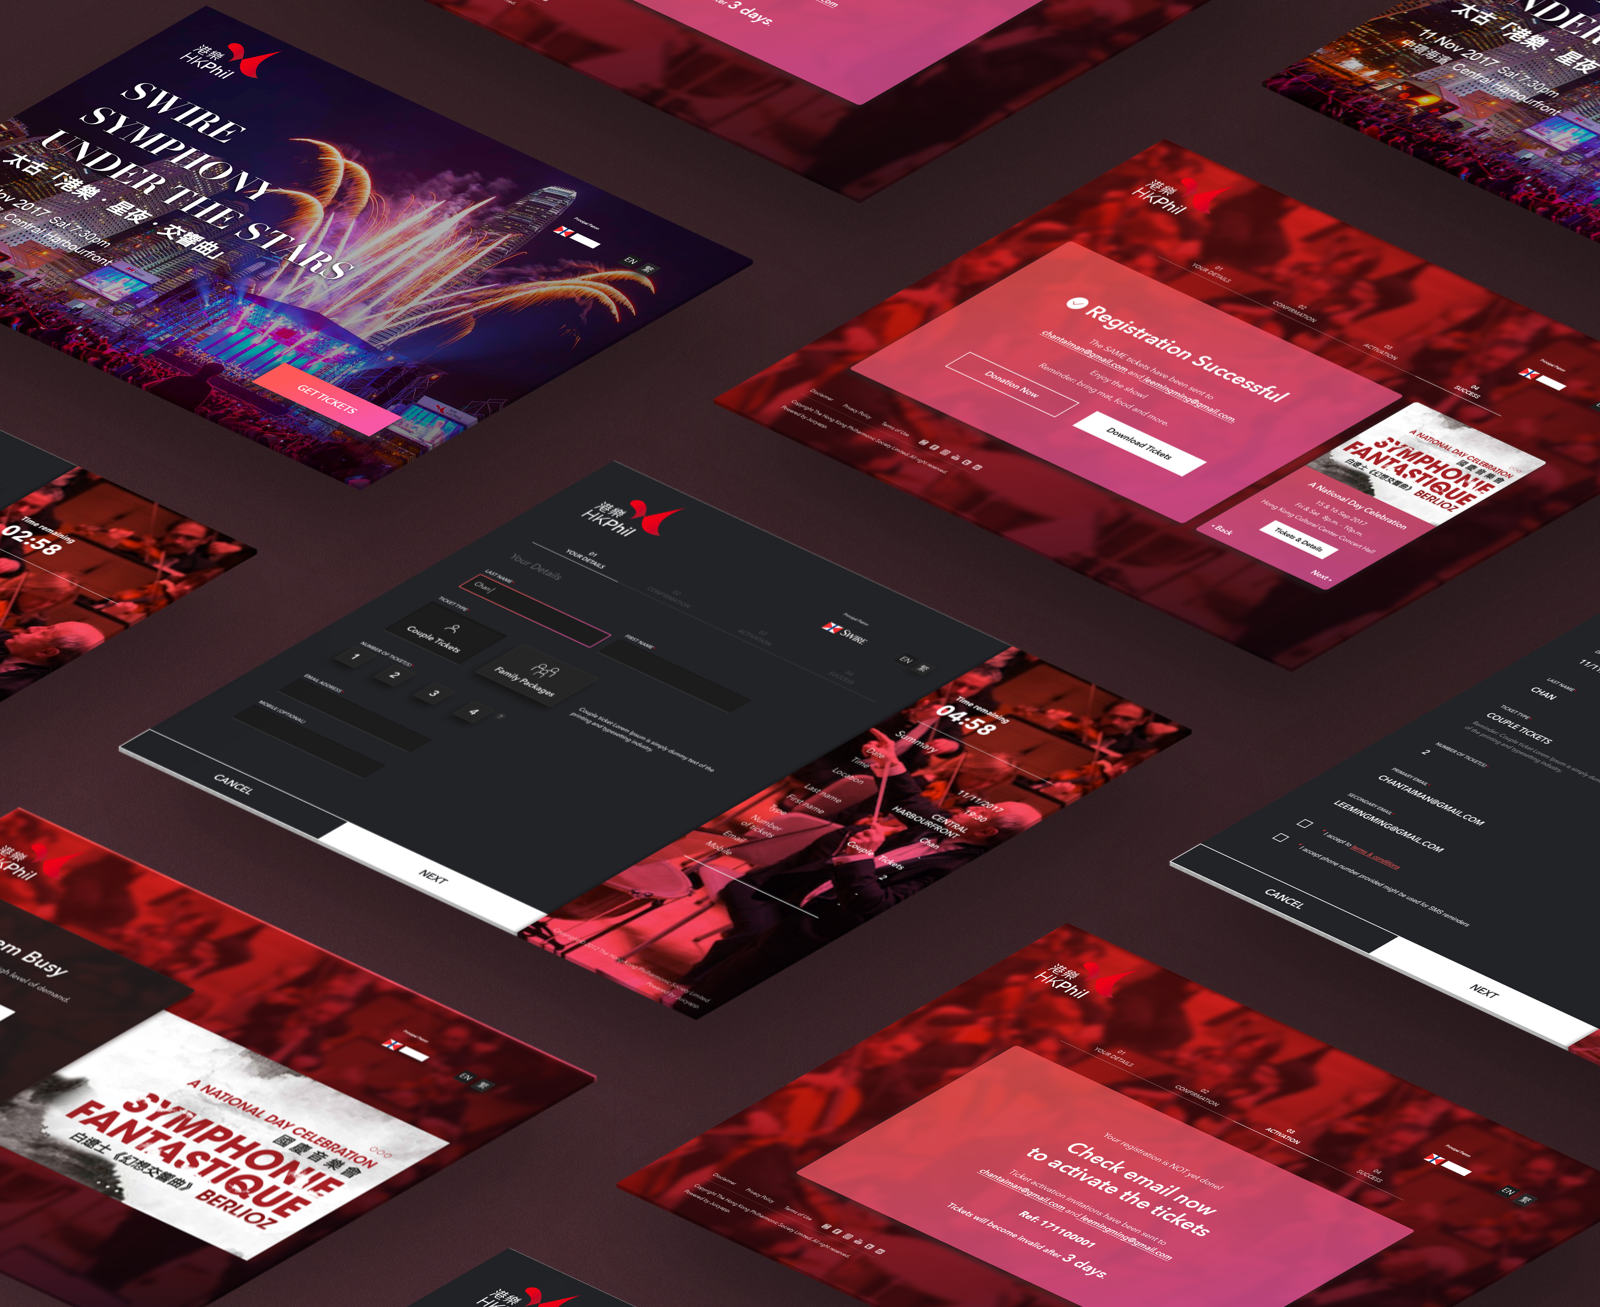 behance hkphil 1600 copy3